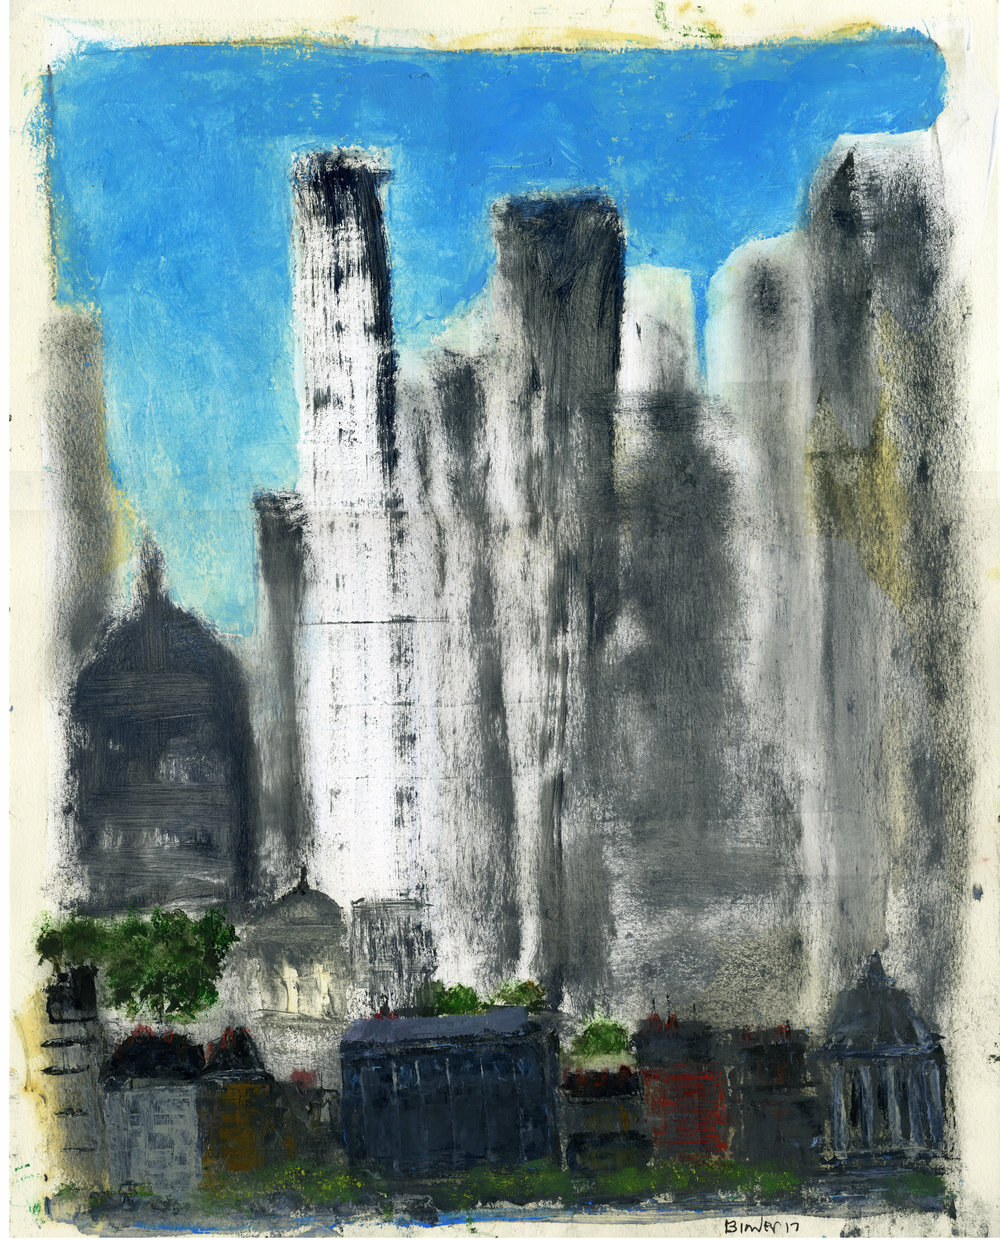 "Towering   Gordon Binder  Oil on Paper  14"" x 11""  $585   Click here to Inquire"